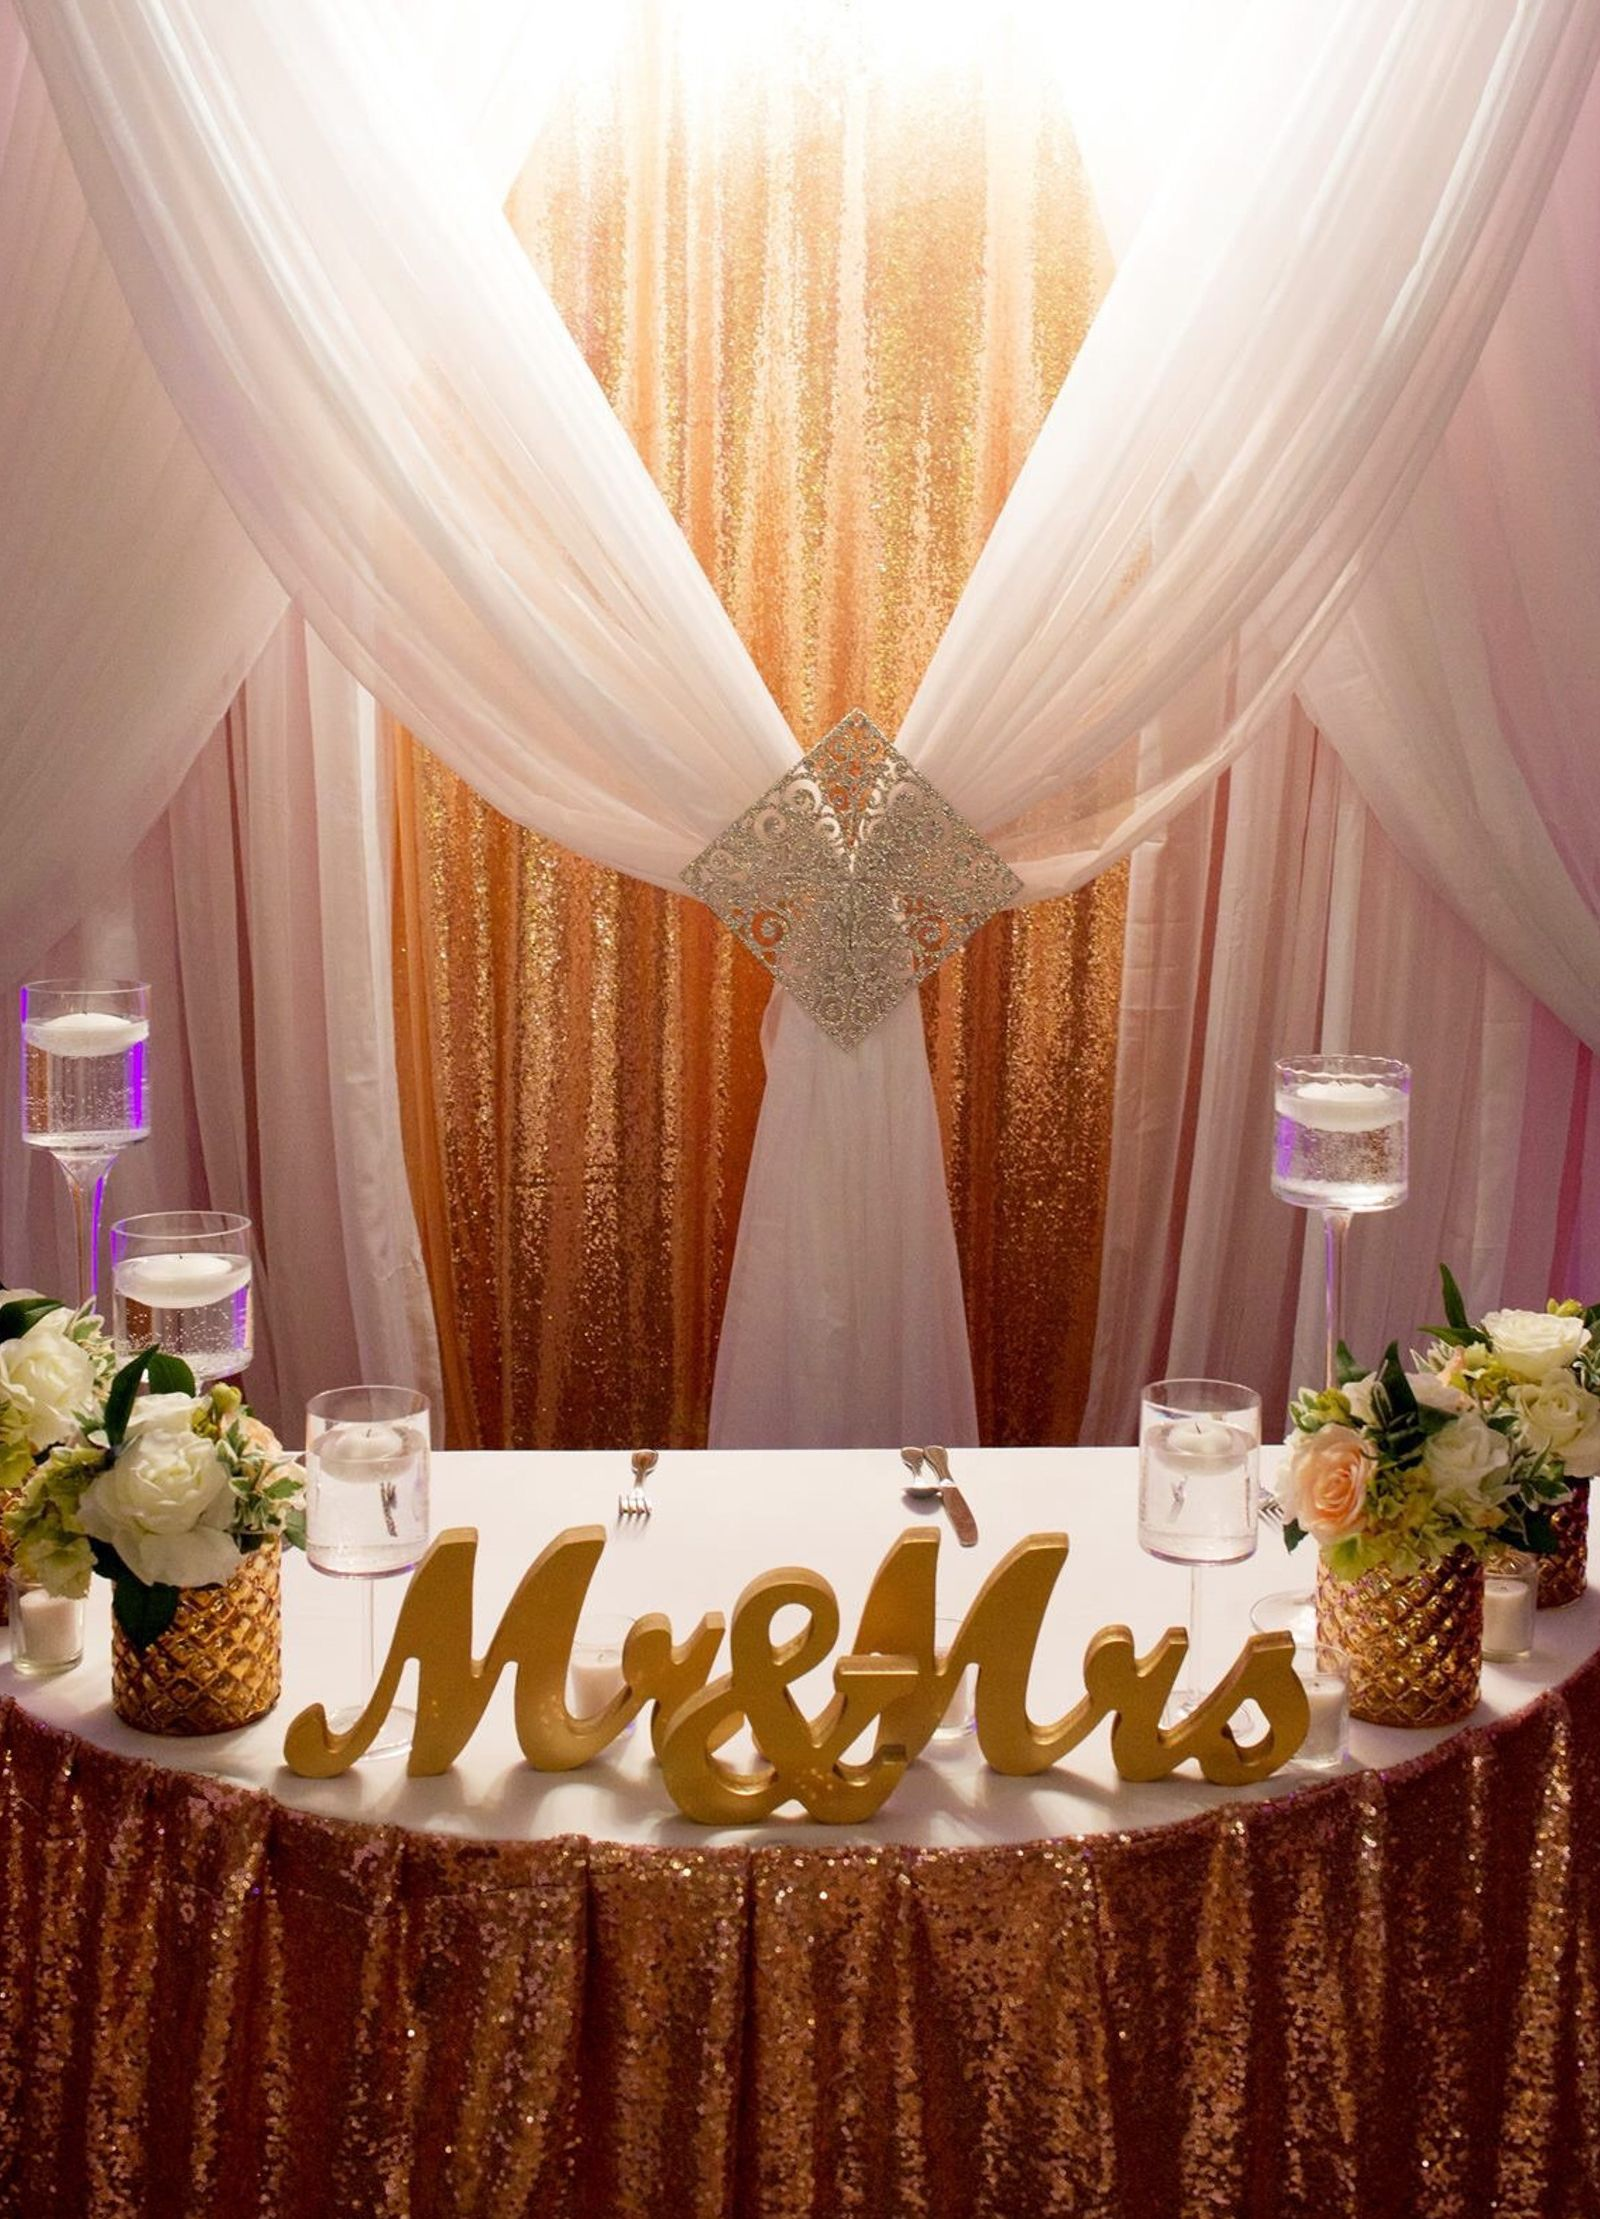 Mr mrs wedding table signs sweetheart table decor table signs gold freestanding mr mrs table signs for a ultra romantic wedding sweetheart table decor unique table signs and event decor gifts accessories at junglespirit Choice Image